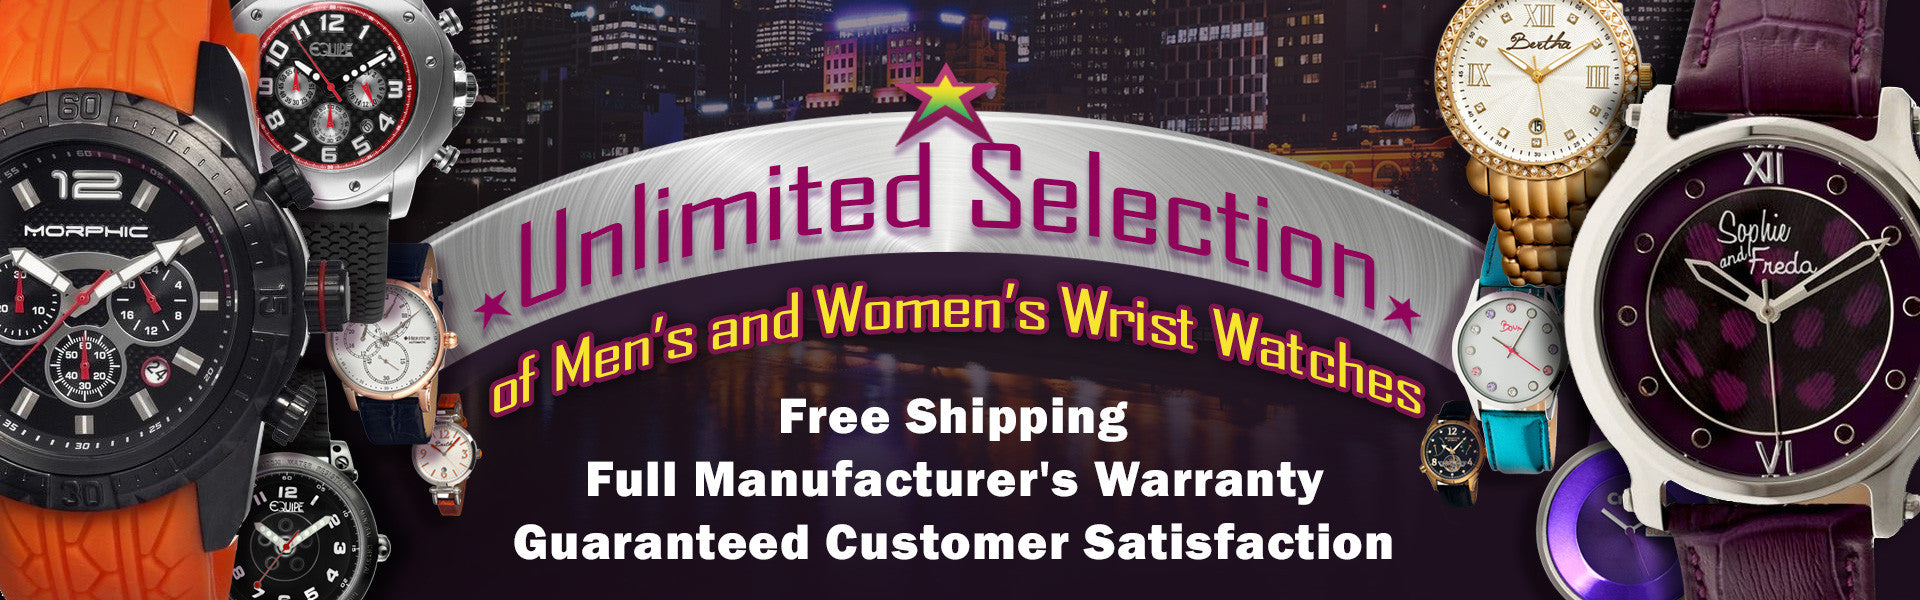 Watch Jones - Unlimited Selection of Mens and Womens Wrist Watches